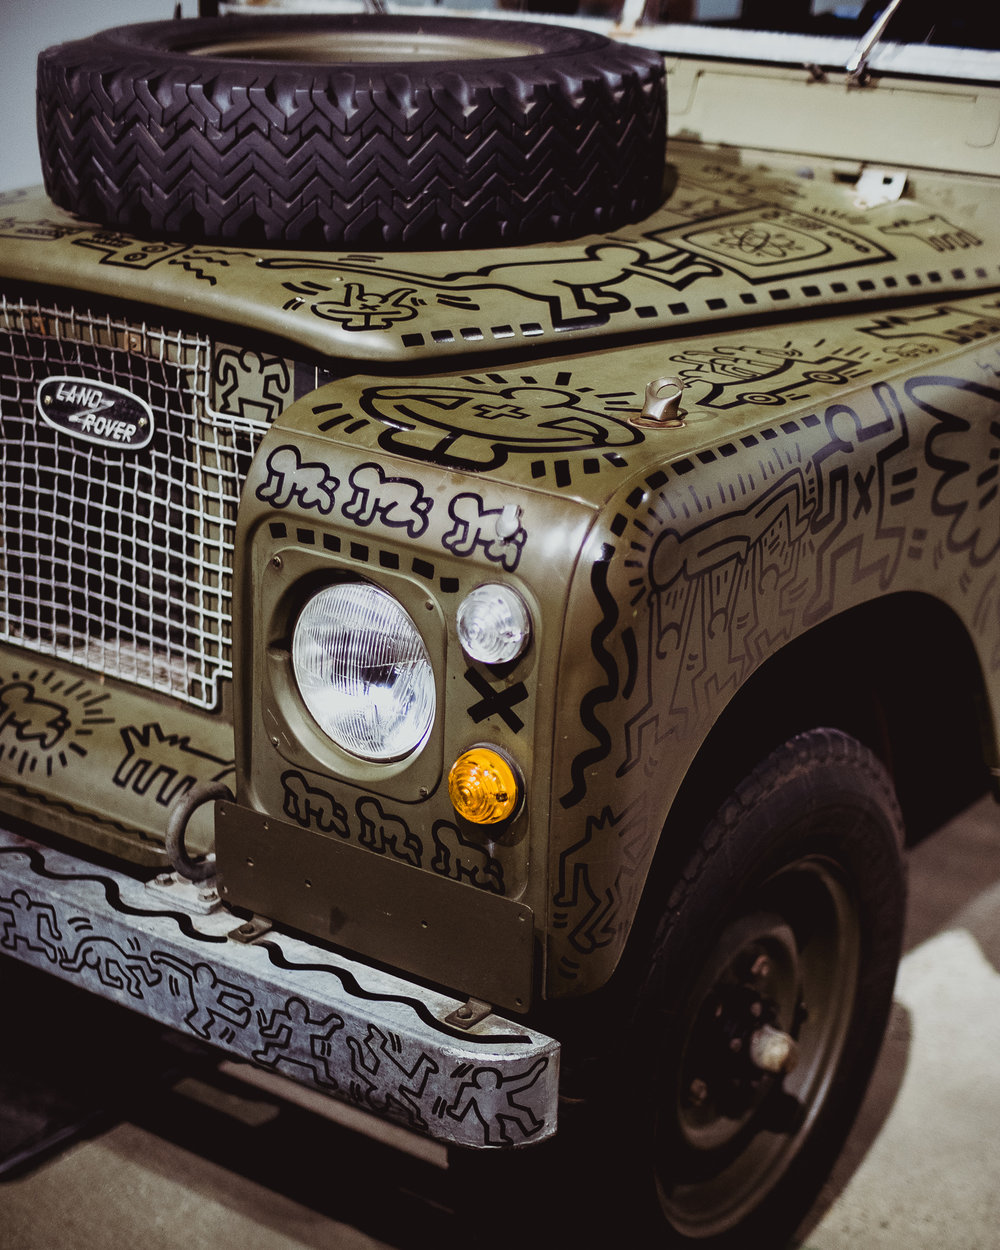 land rover series 3 petersen keith haring 003